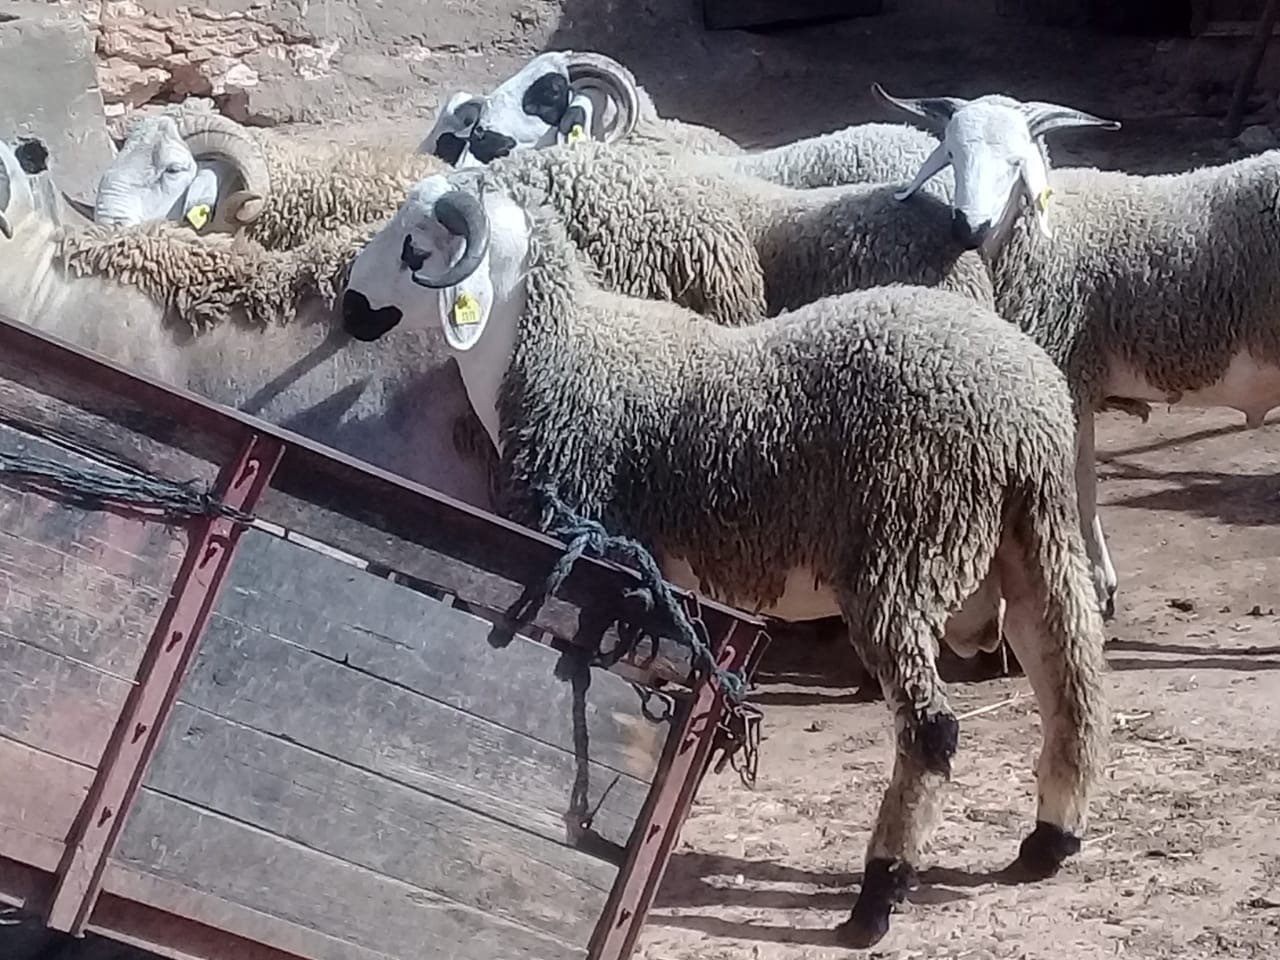 Eid Al Adha in Morocco: How Many Sheep Can You Fit in a Jeep?